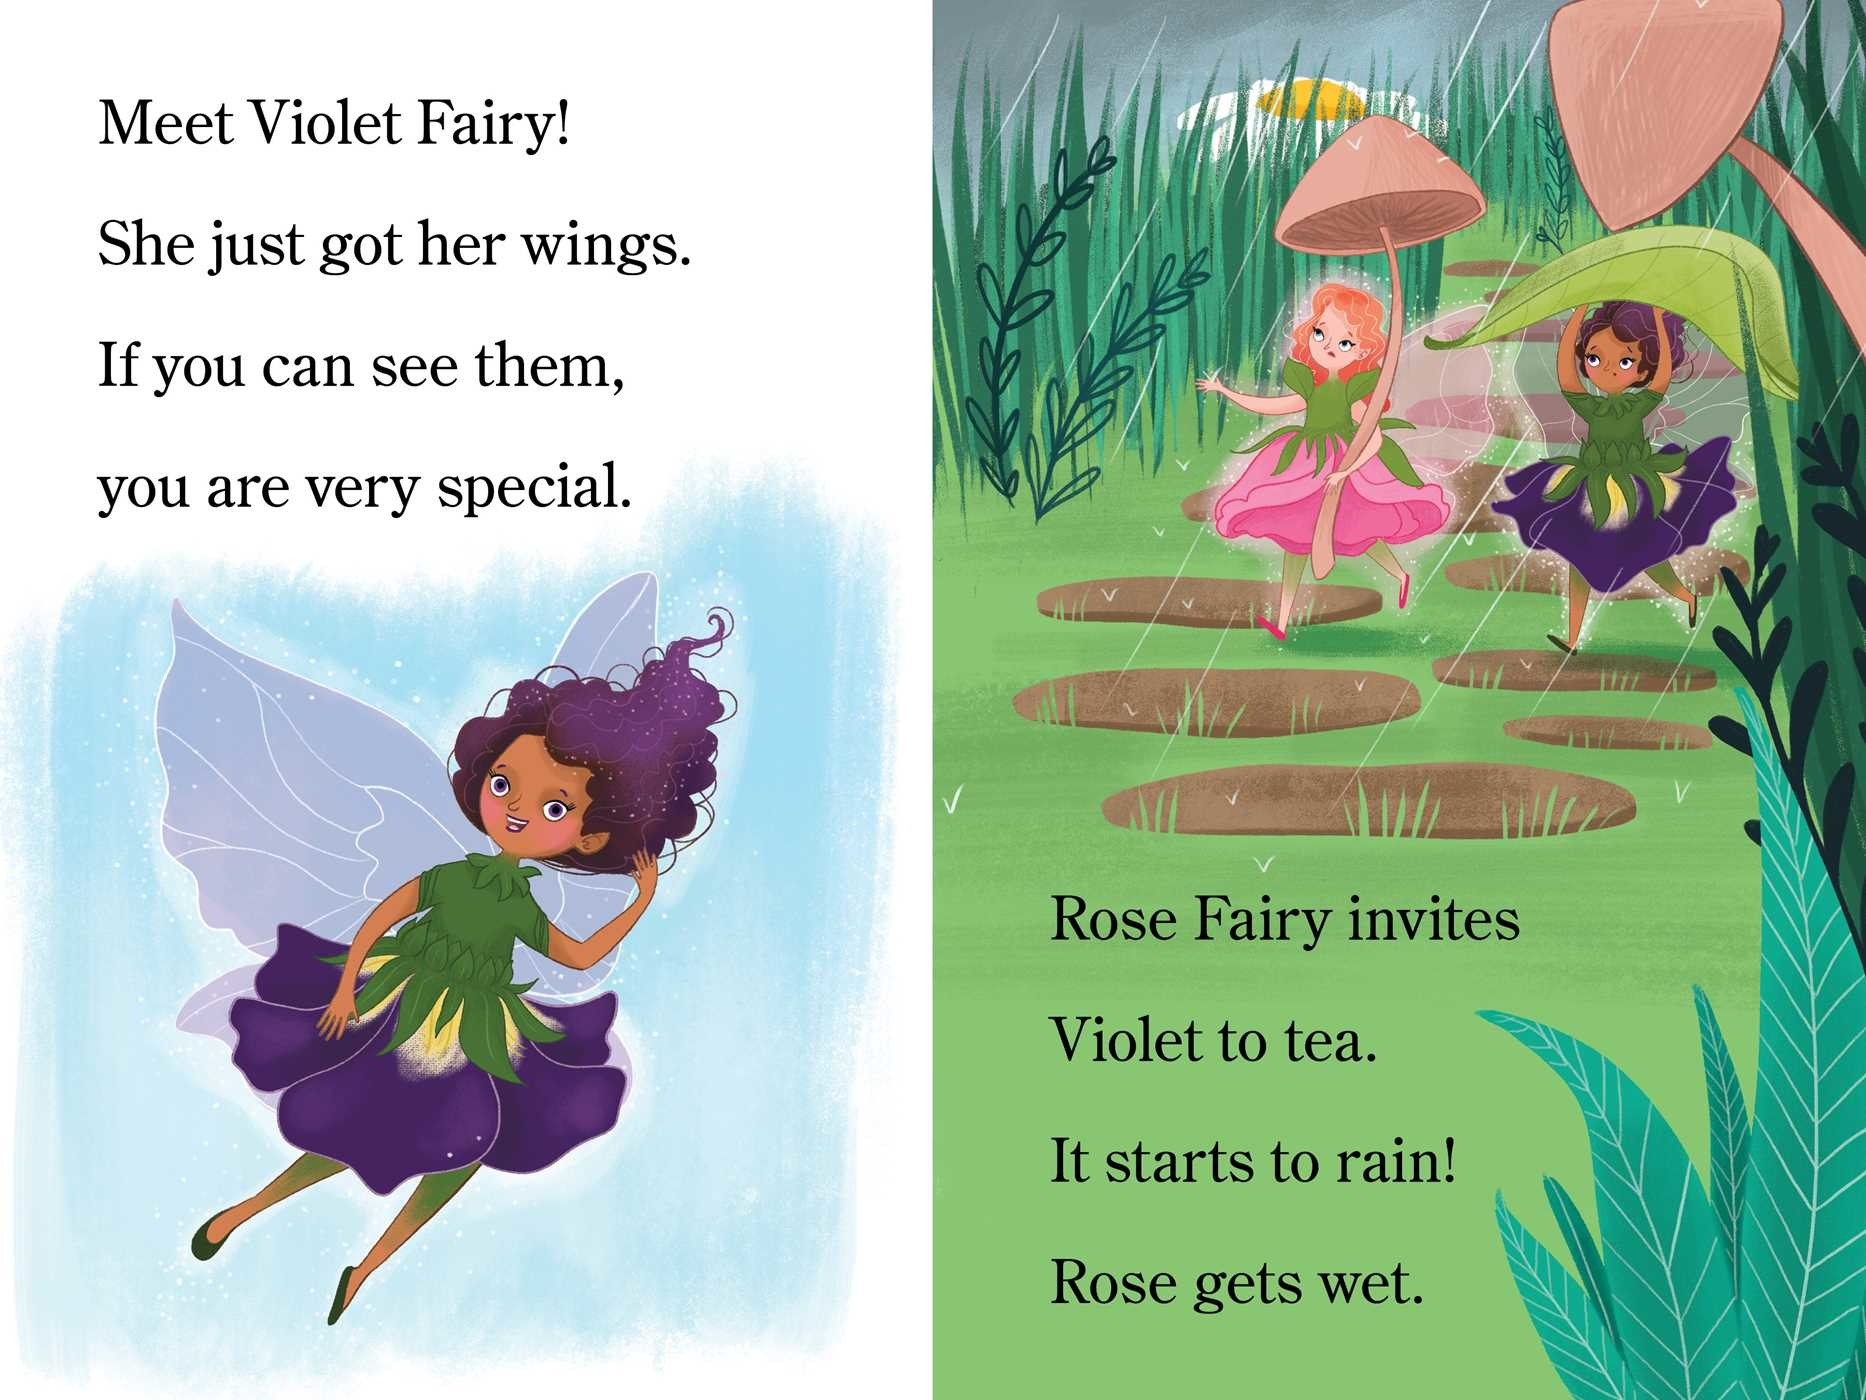 Violet fairy gets her wings 9781481487979.in01